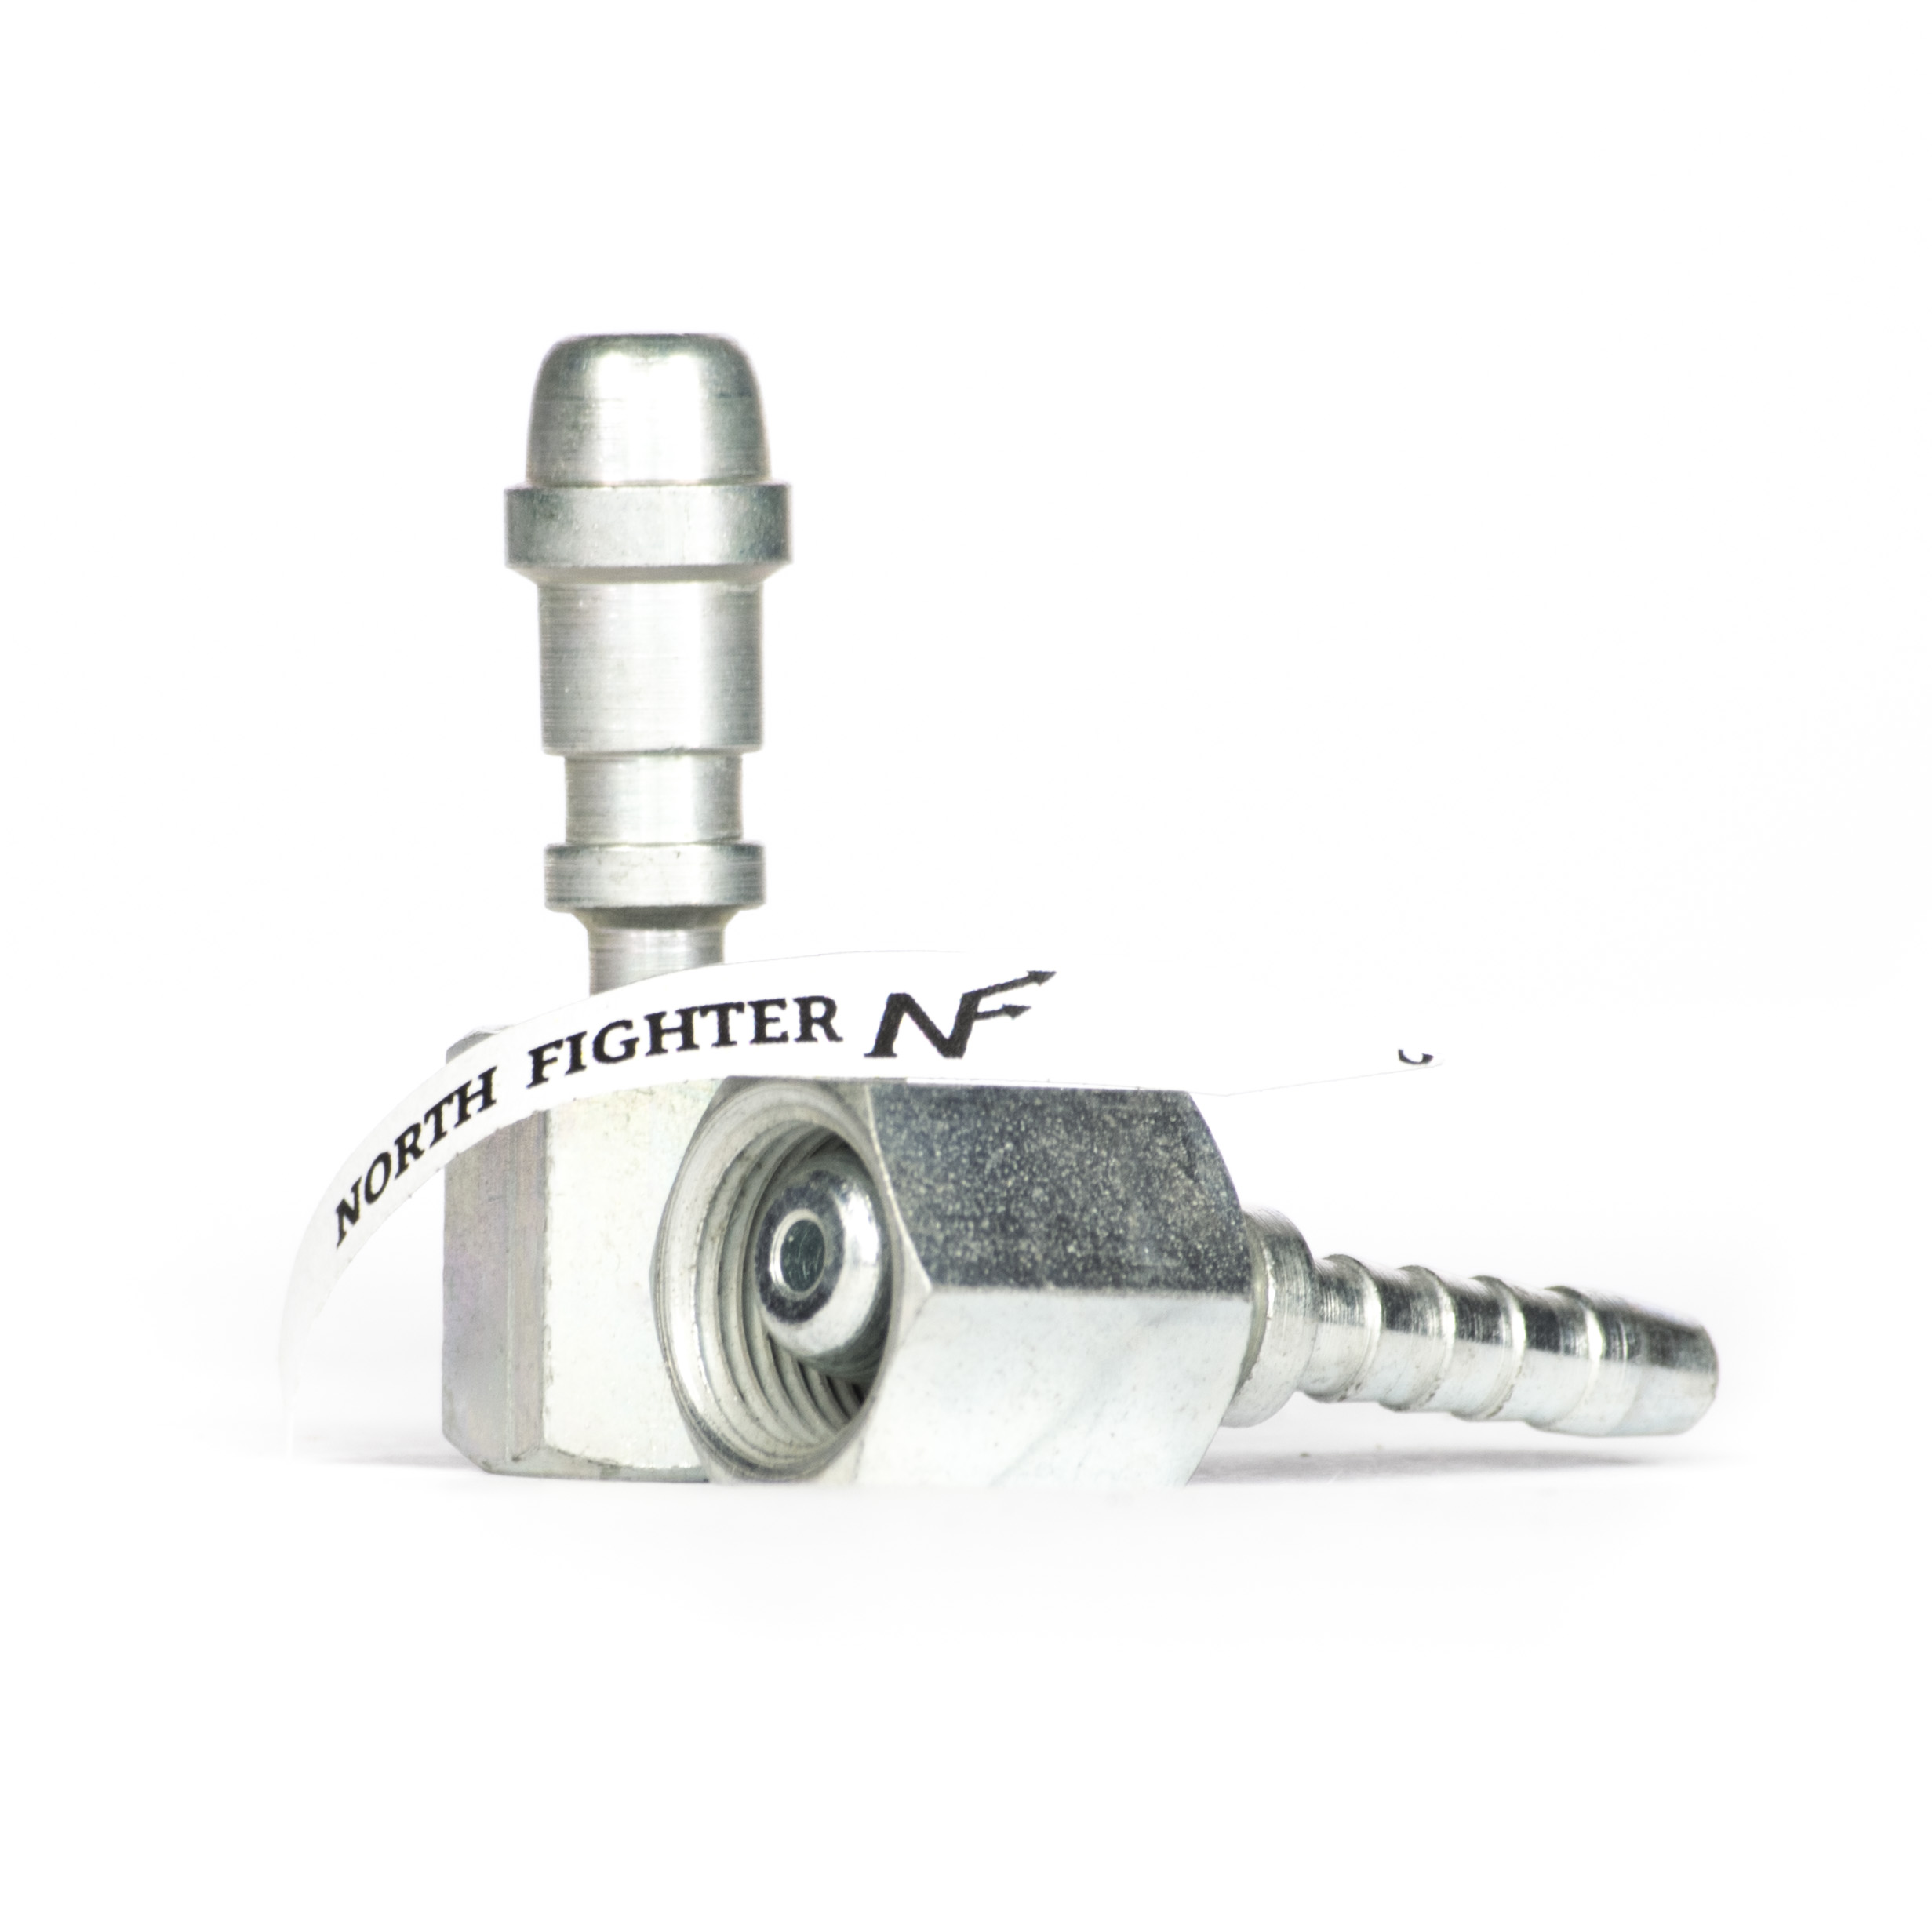 DKL 6L P11 TPS NORTH FIGHTER®